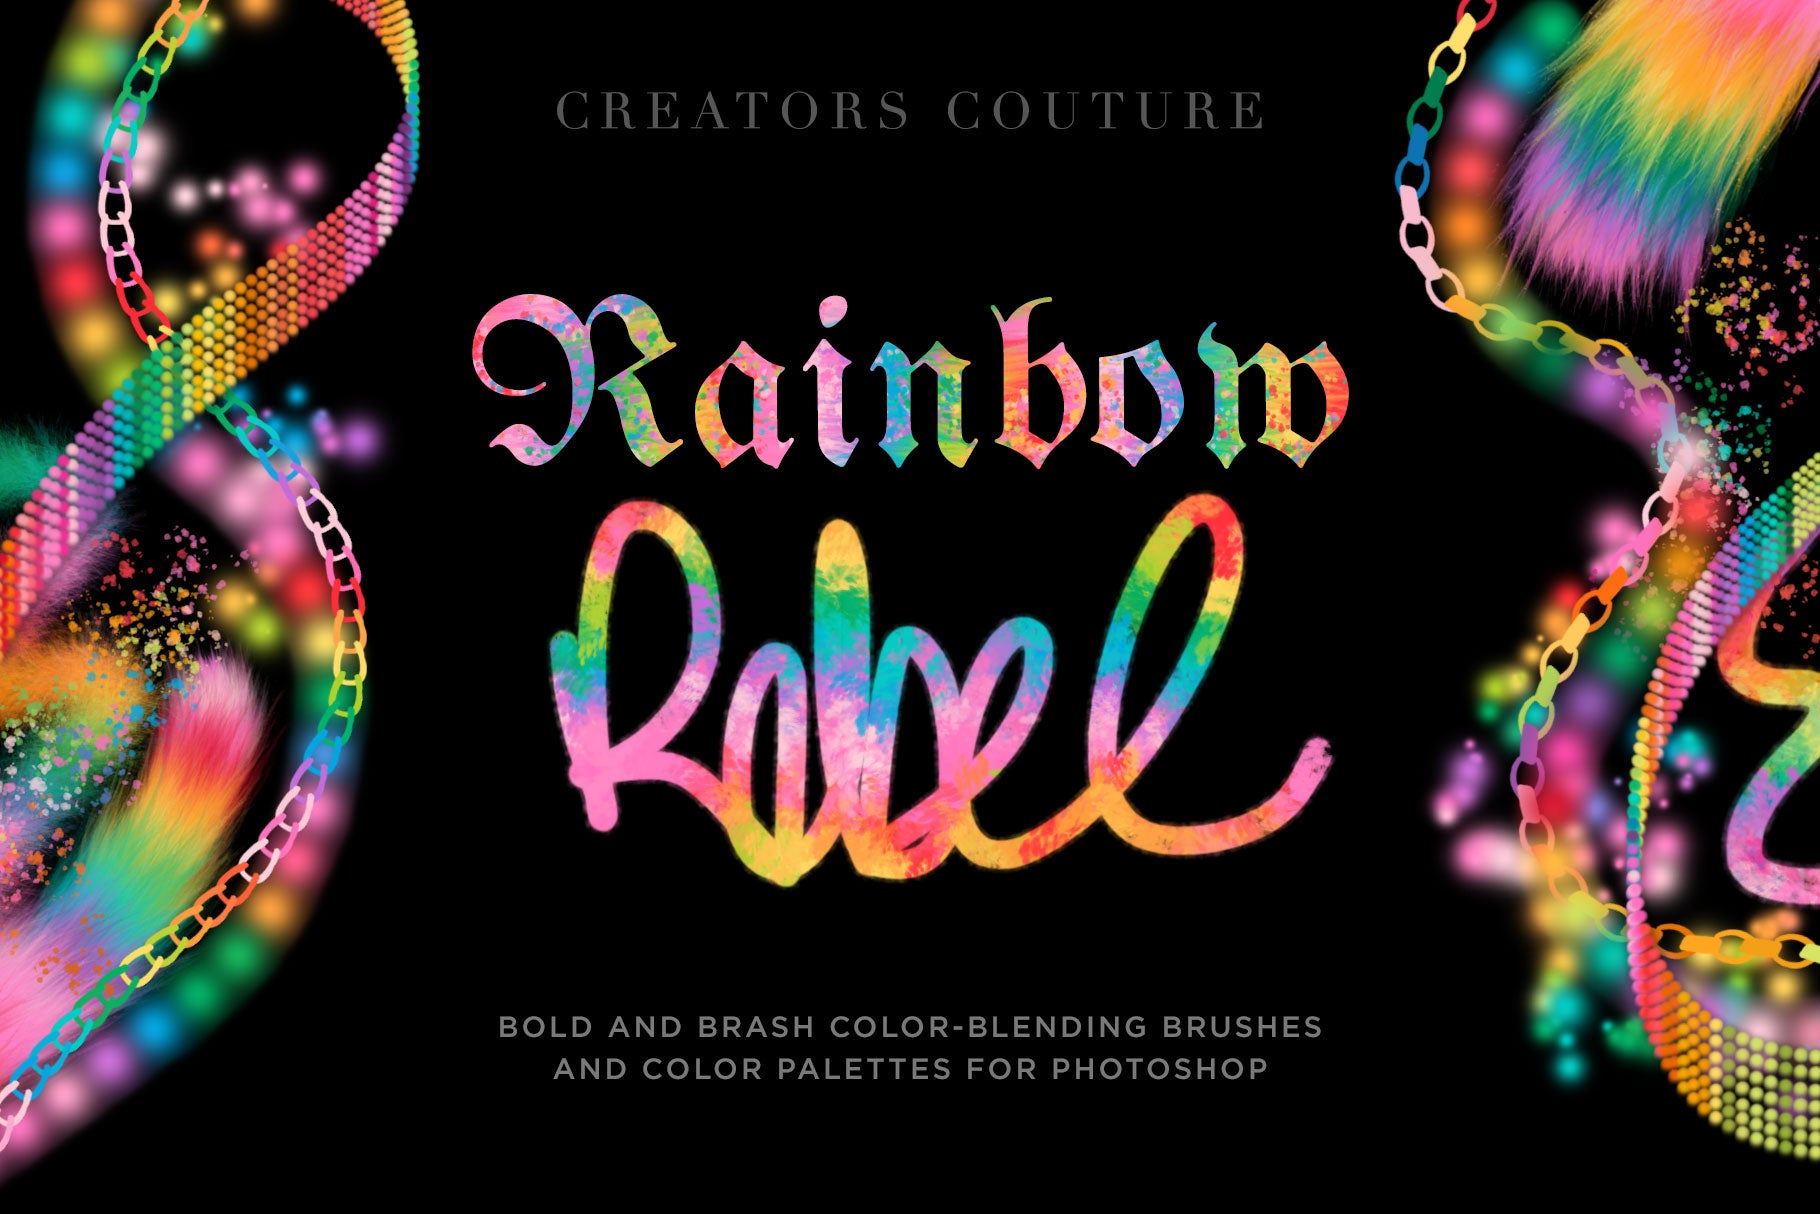 """Rainbow Rebel"" Color-Blending Photoshop Brushes and Color Palettes"